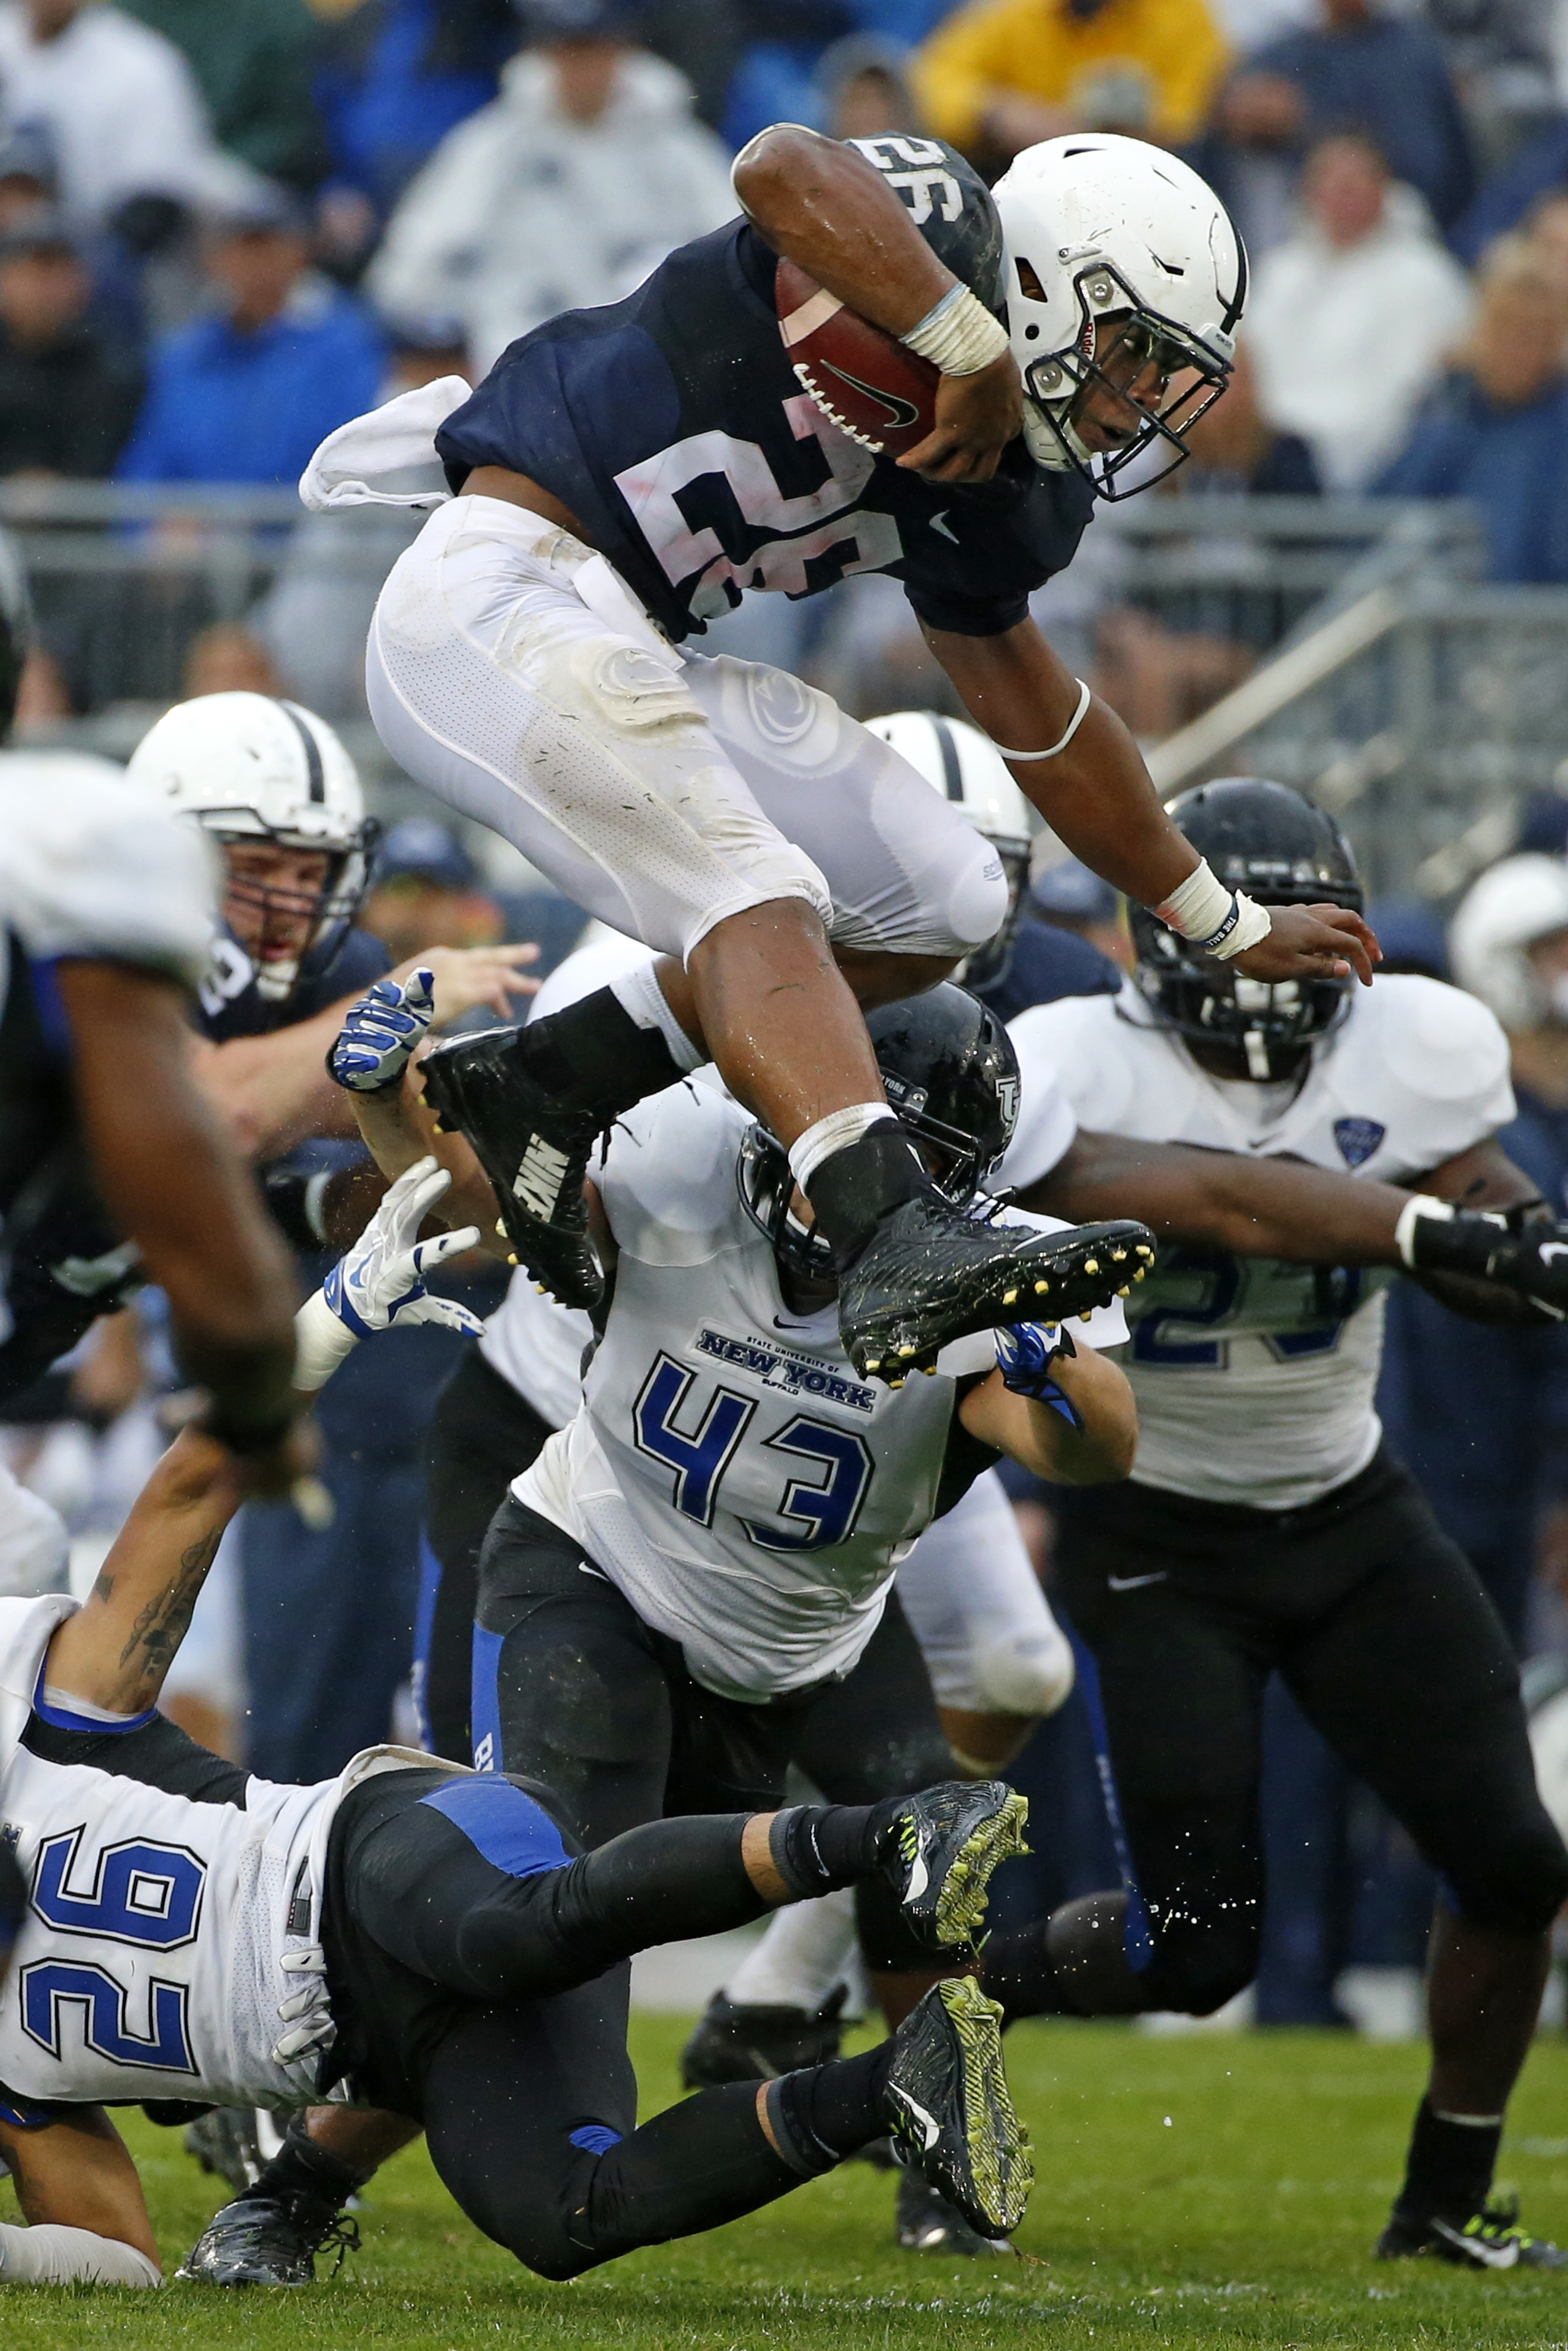 Penn State running back Saquon Barkley (26) leaps over Buffalo defenders safety Ryan Williamson (26) and linebacker Nick Gilbo (43) during the second half of an NCAA college football game in State College, Pa., Saturday, Sept. 12, 2015. (AP Photo/Gene J.